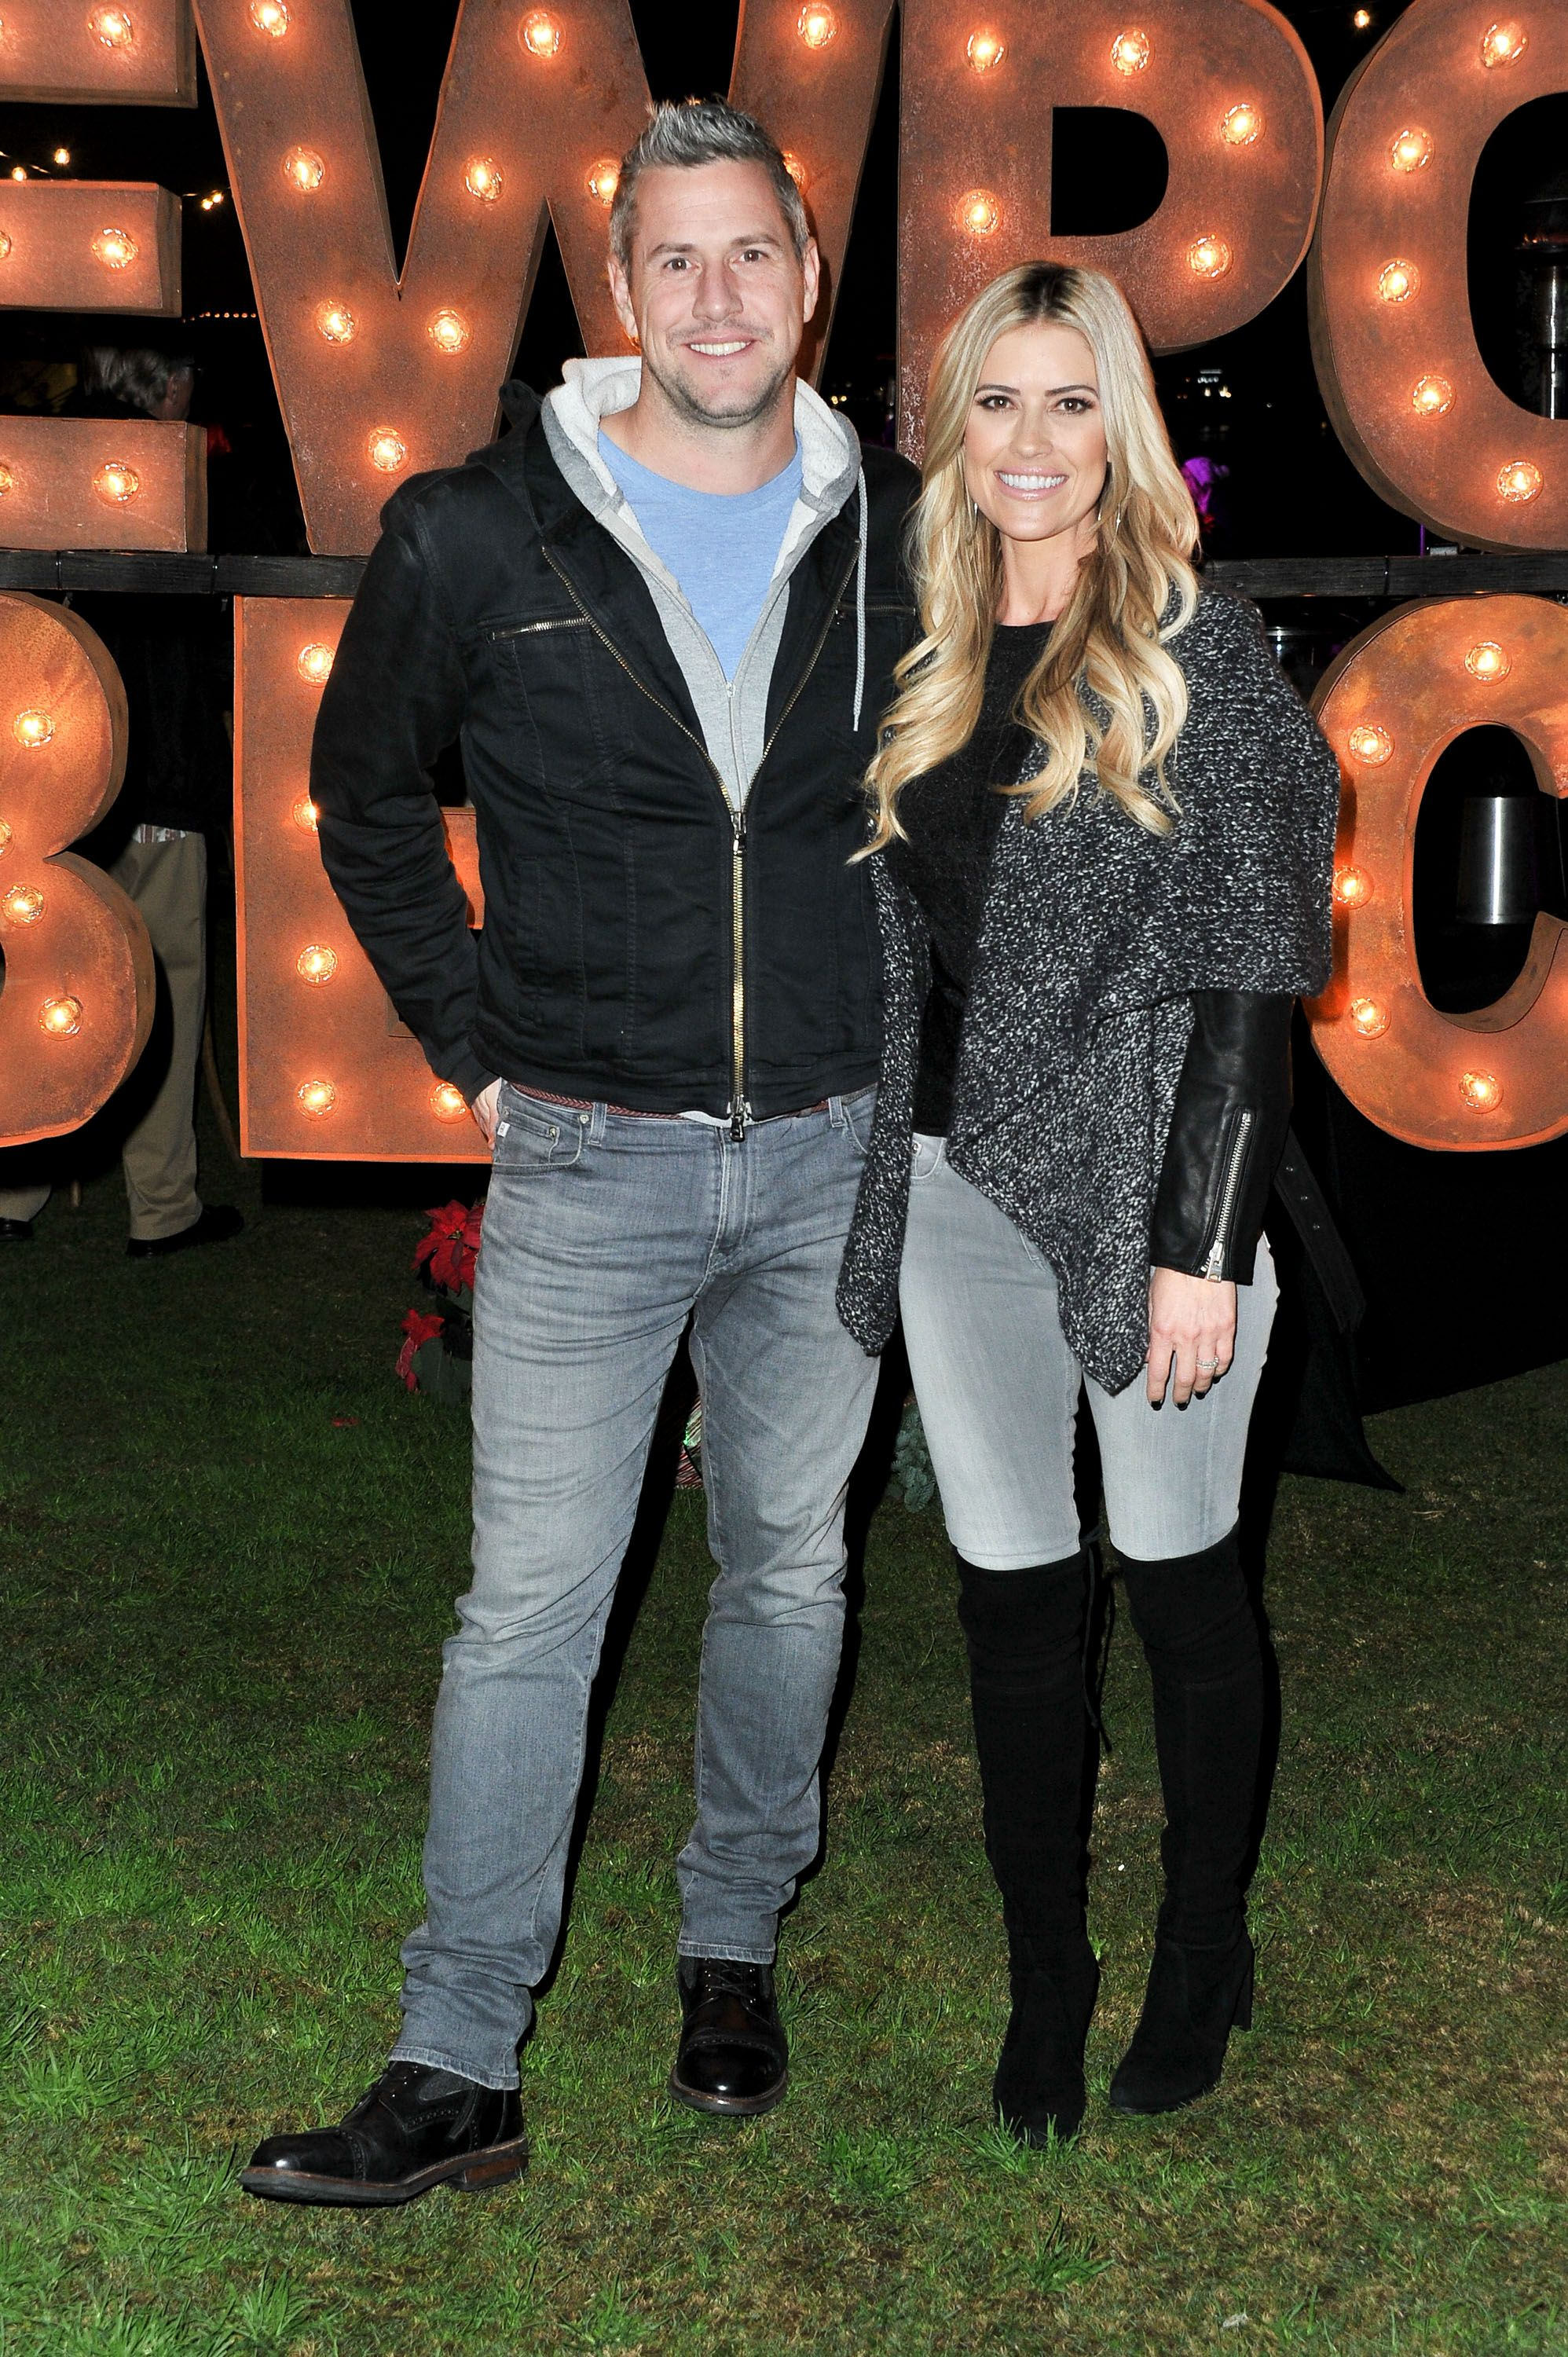 Christina Anstead and Ant Anstead attend the 111th Annual Newport Beach Christmas Boat Parade opening night on December 18, 2019. | Photo: Getty Images